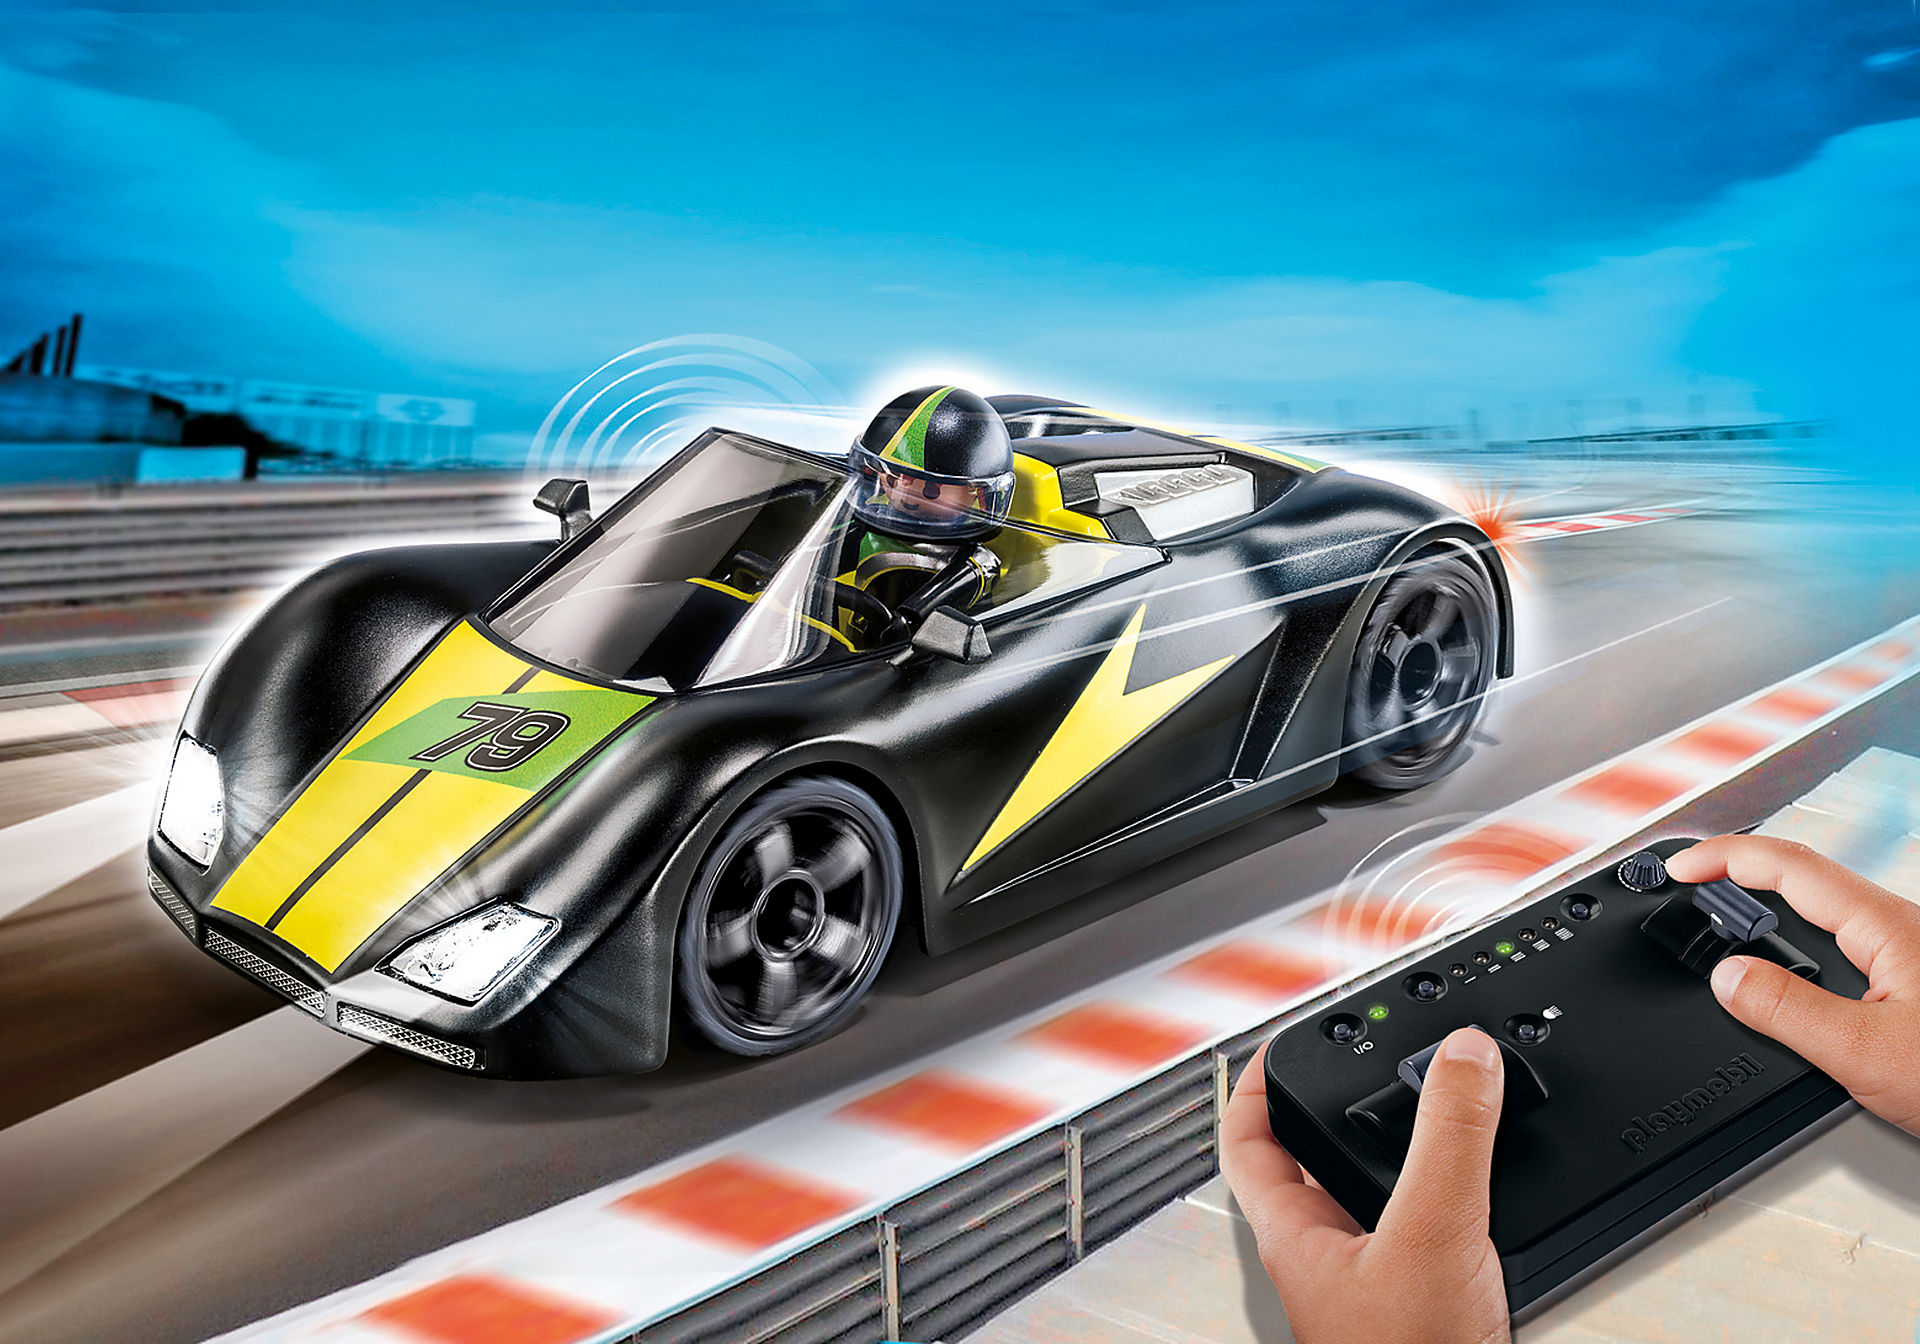 http://media.playmobil.com/i/playmobil/9089_product_detail/RC Turbo Racer